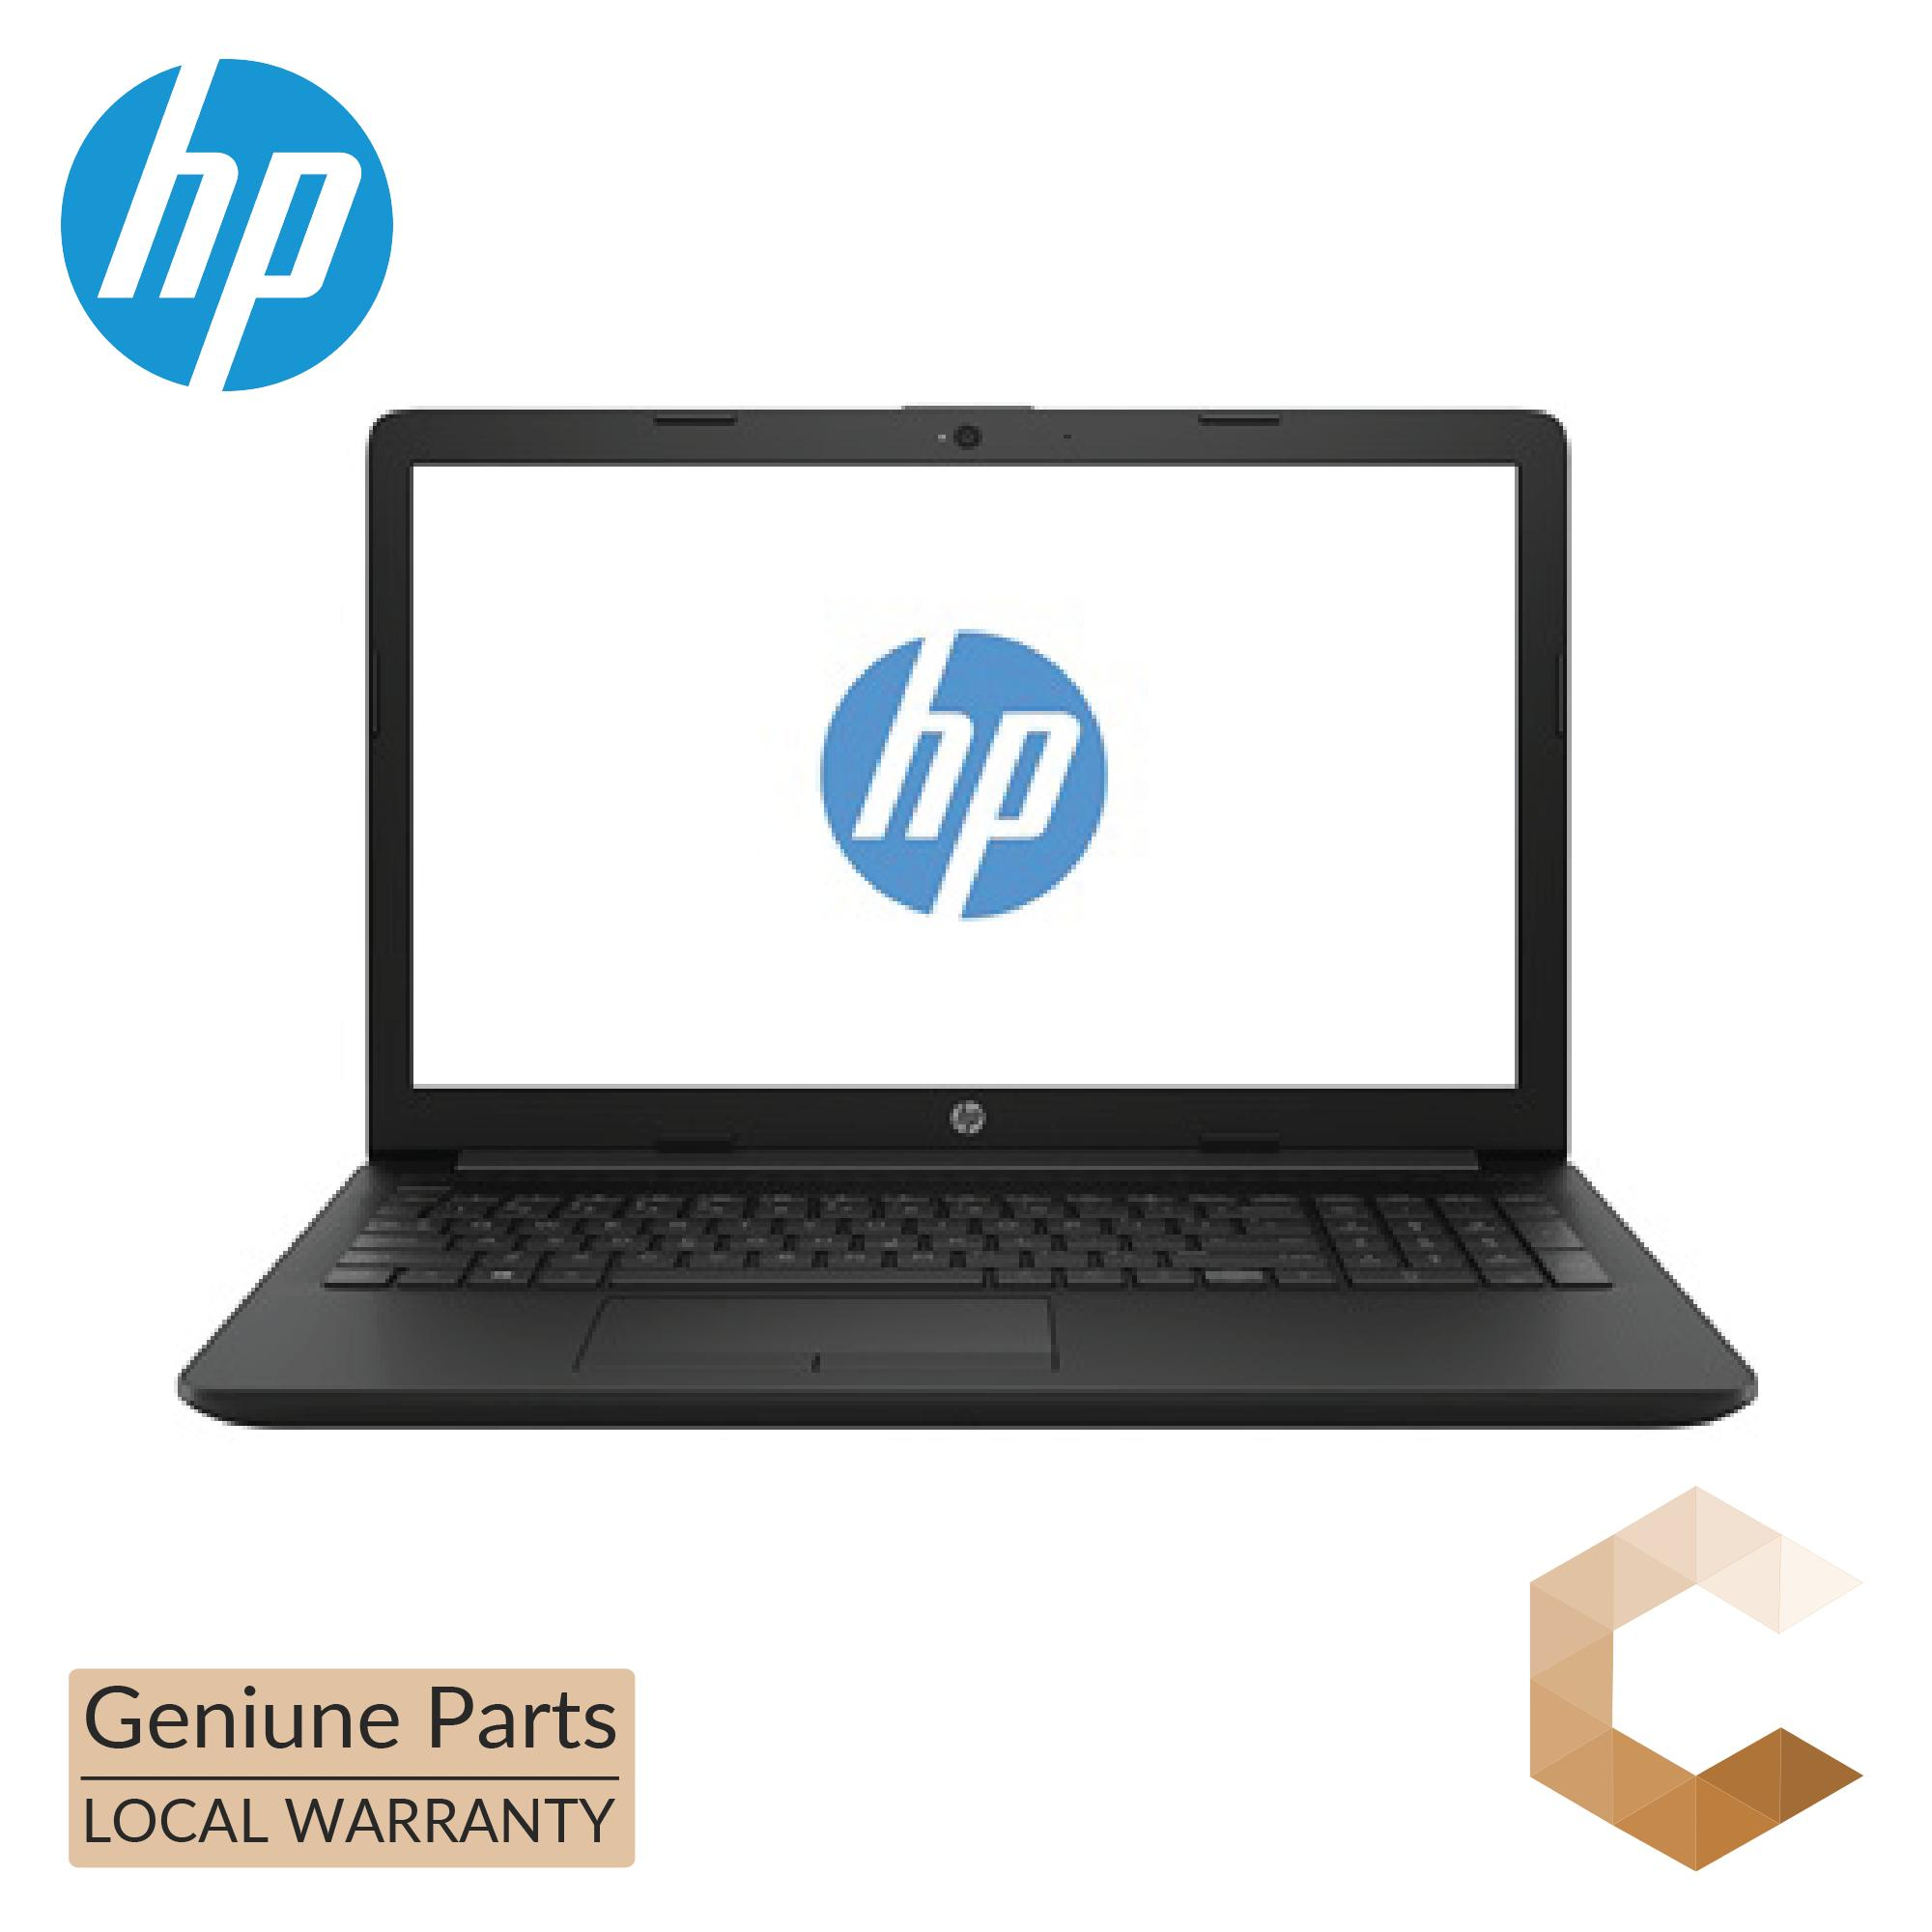 HP Laptop 15-da0350TU (5TP05PA)